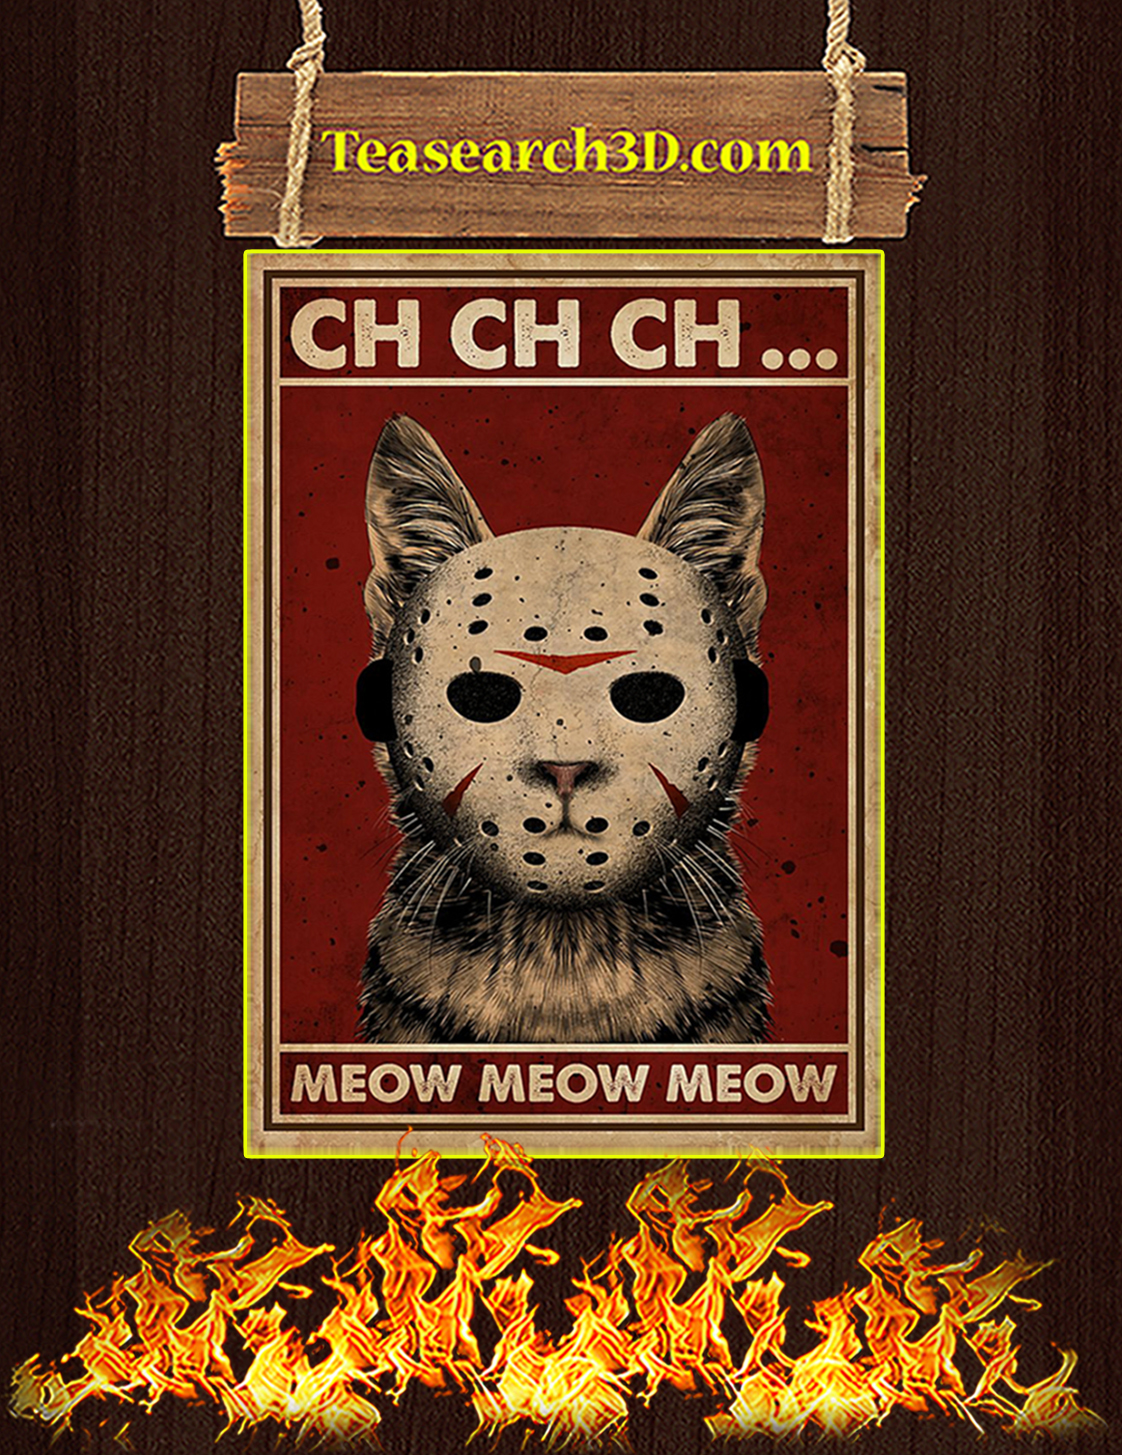 Ch ch ch meow meow meow poster A3